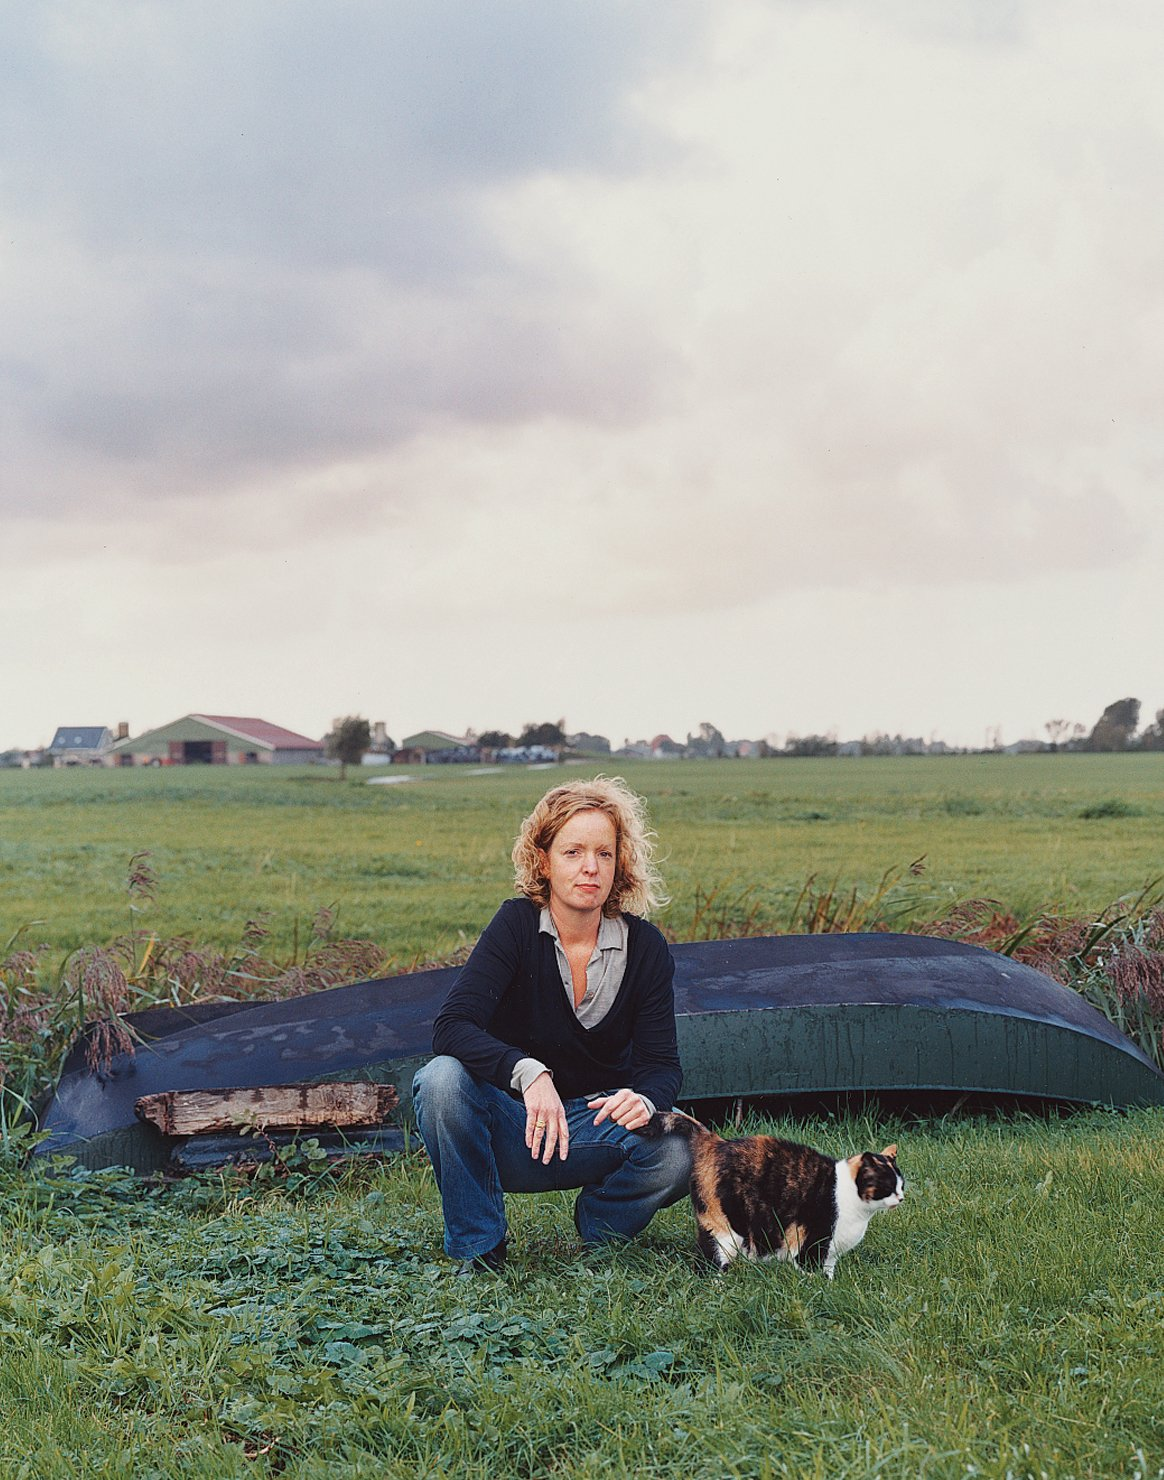 Outdoor Claudy Jongstra kneels with a family cat in the yard behind her office and home, which she shares with her partner, Claudia Busson, and their two sons, Eabal and Jesk. Behind her is a small dinghy that the family uses to navigate the numerous irrigation canals that traverse the farmlands throughout Friesland. Despite its modest scale, Jongstra's studio has worked on major collaborations with Hella Jongerius,Tord Boontje, Steven Holl, andRem Koolhaas, in addition tofashion design for Alexander van Slobbe and costume work for Star Wars: The Phantom Menace.  Dwell's Favorite Photos from Shear Talent